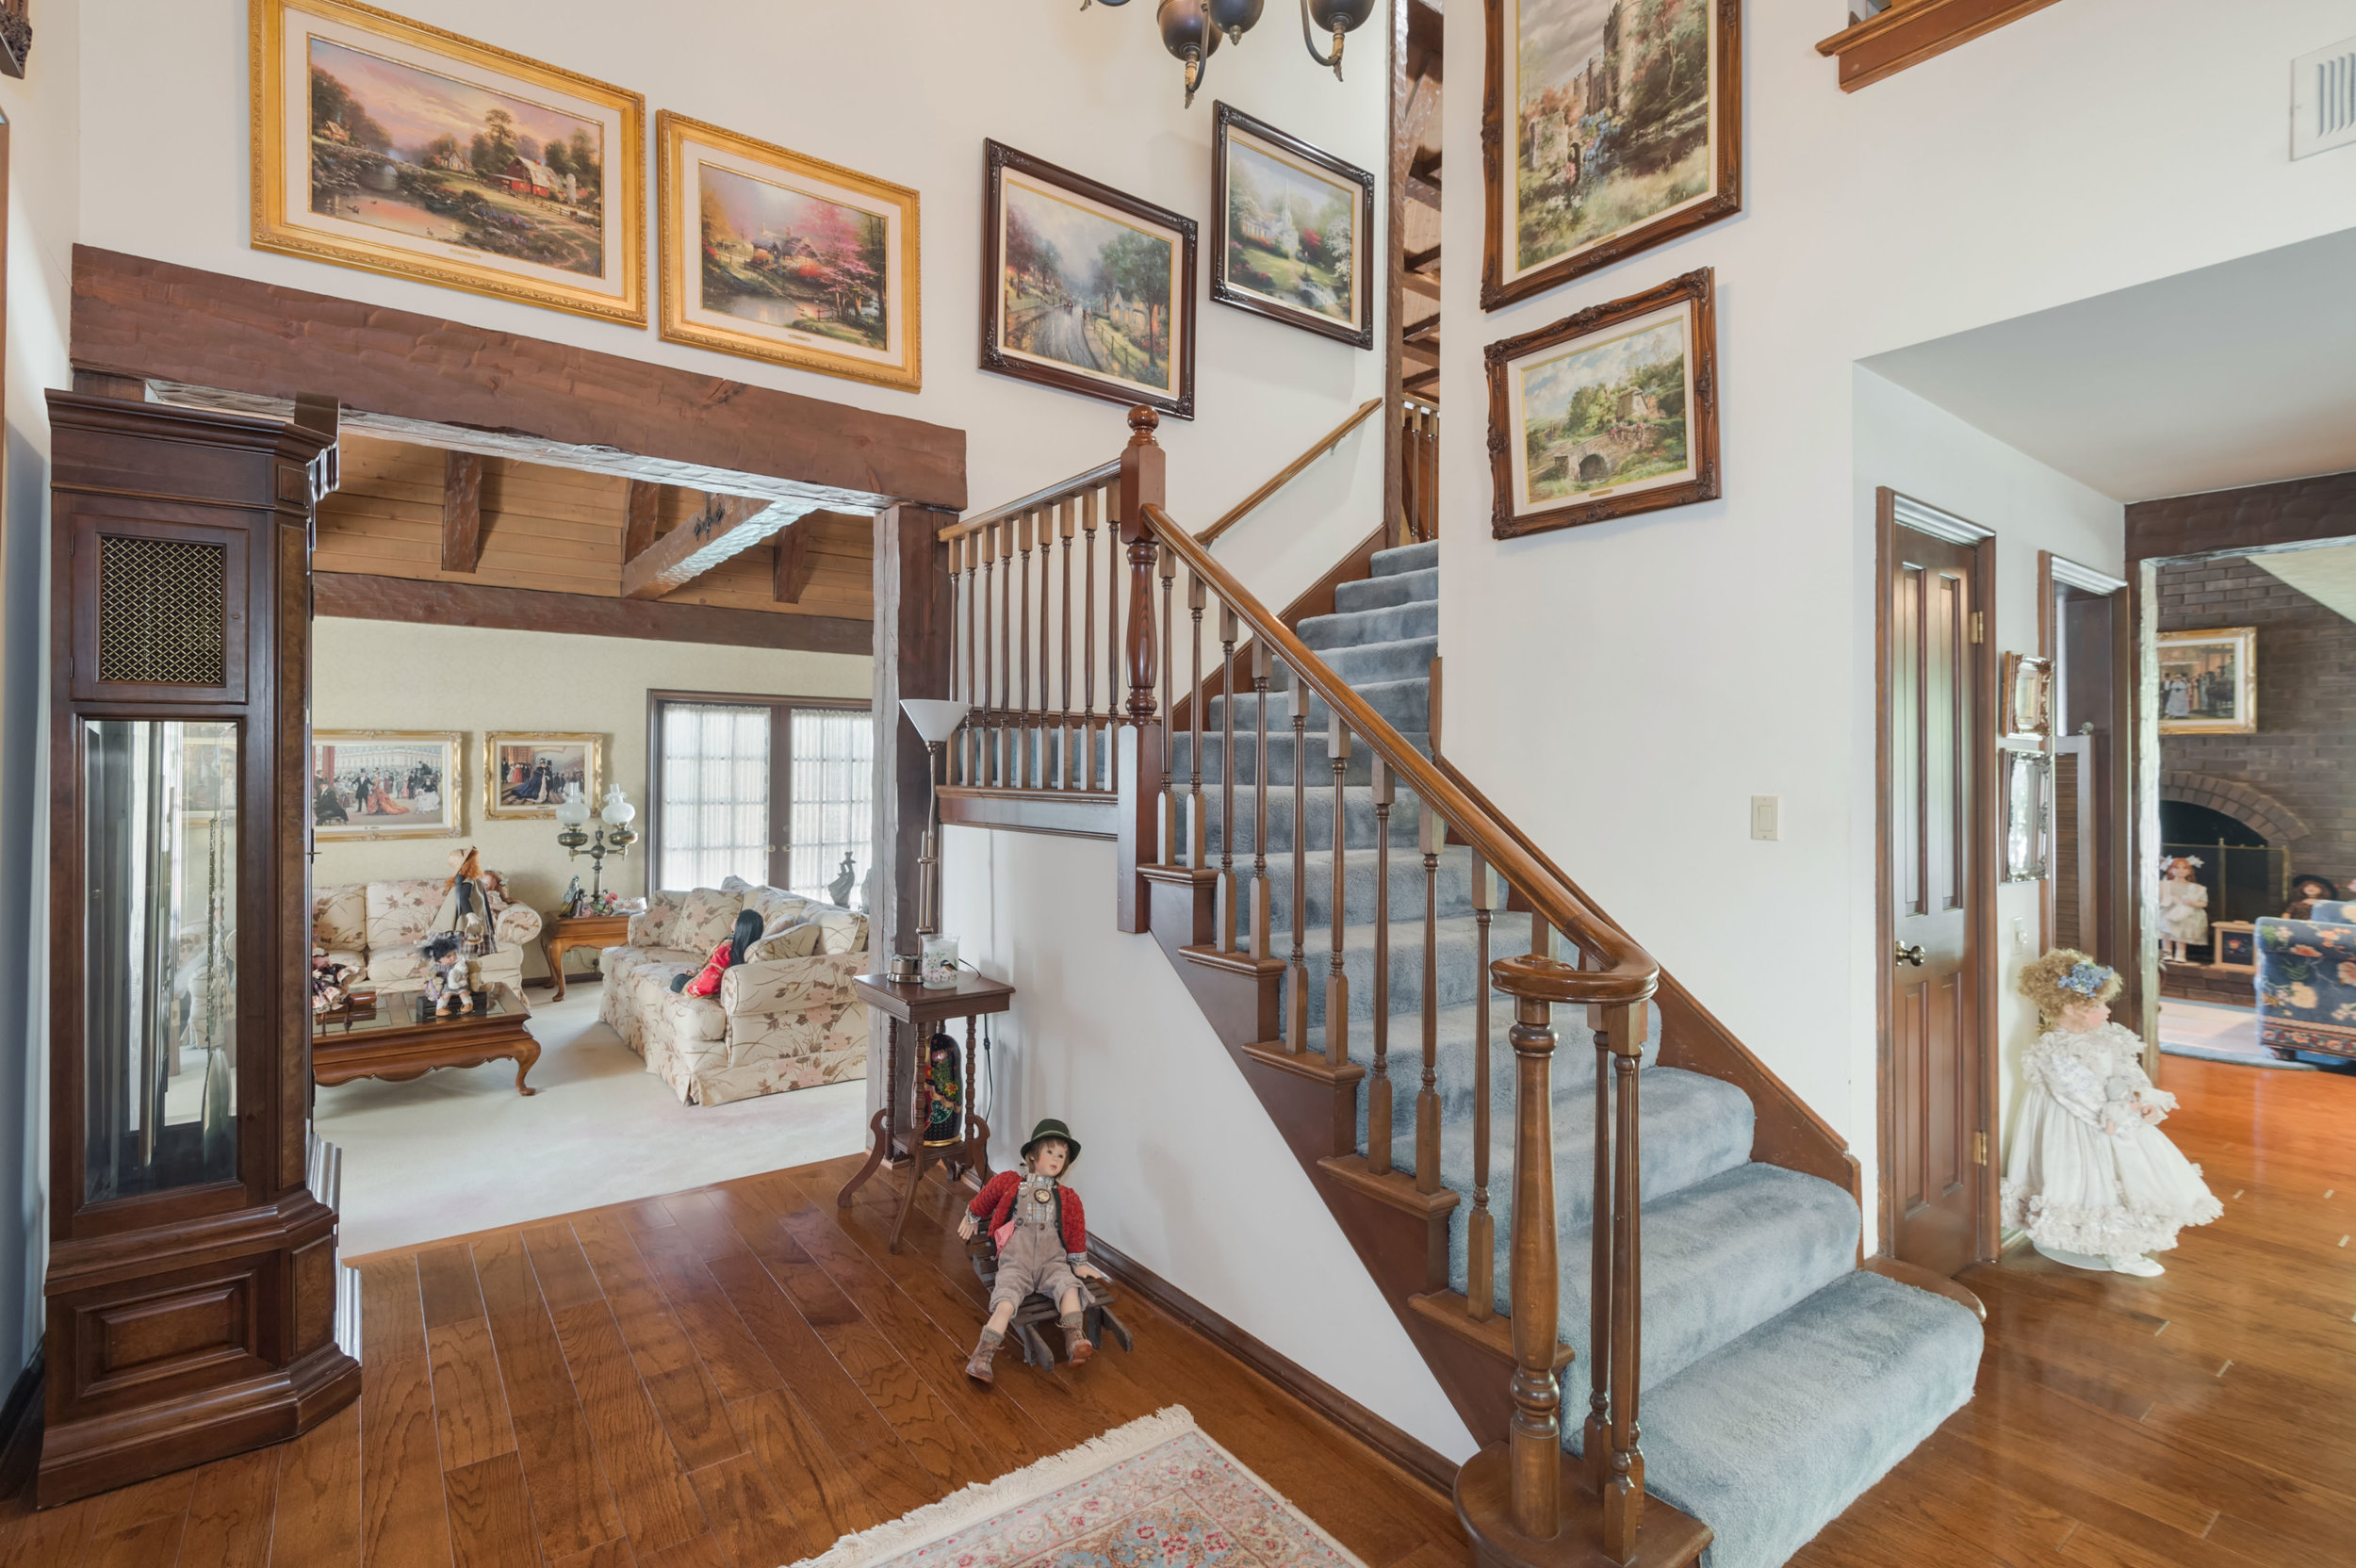 002 Stairs 3191 Toppington Drive Beverly Hills For Sale Lease The Malibu Life Team Luxury Real Estate.jpg